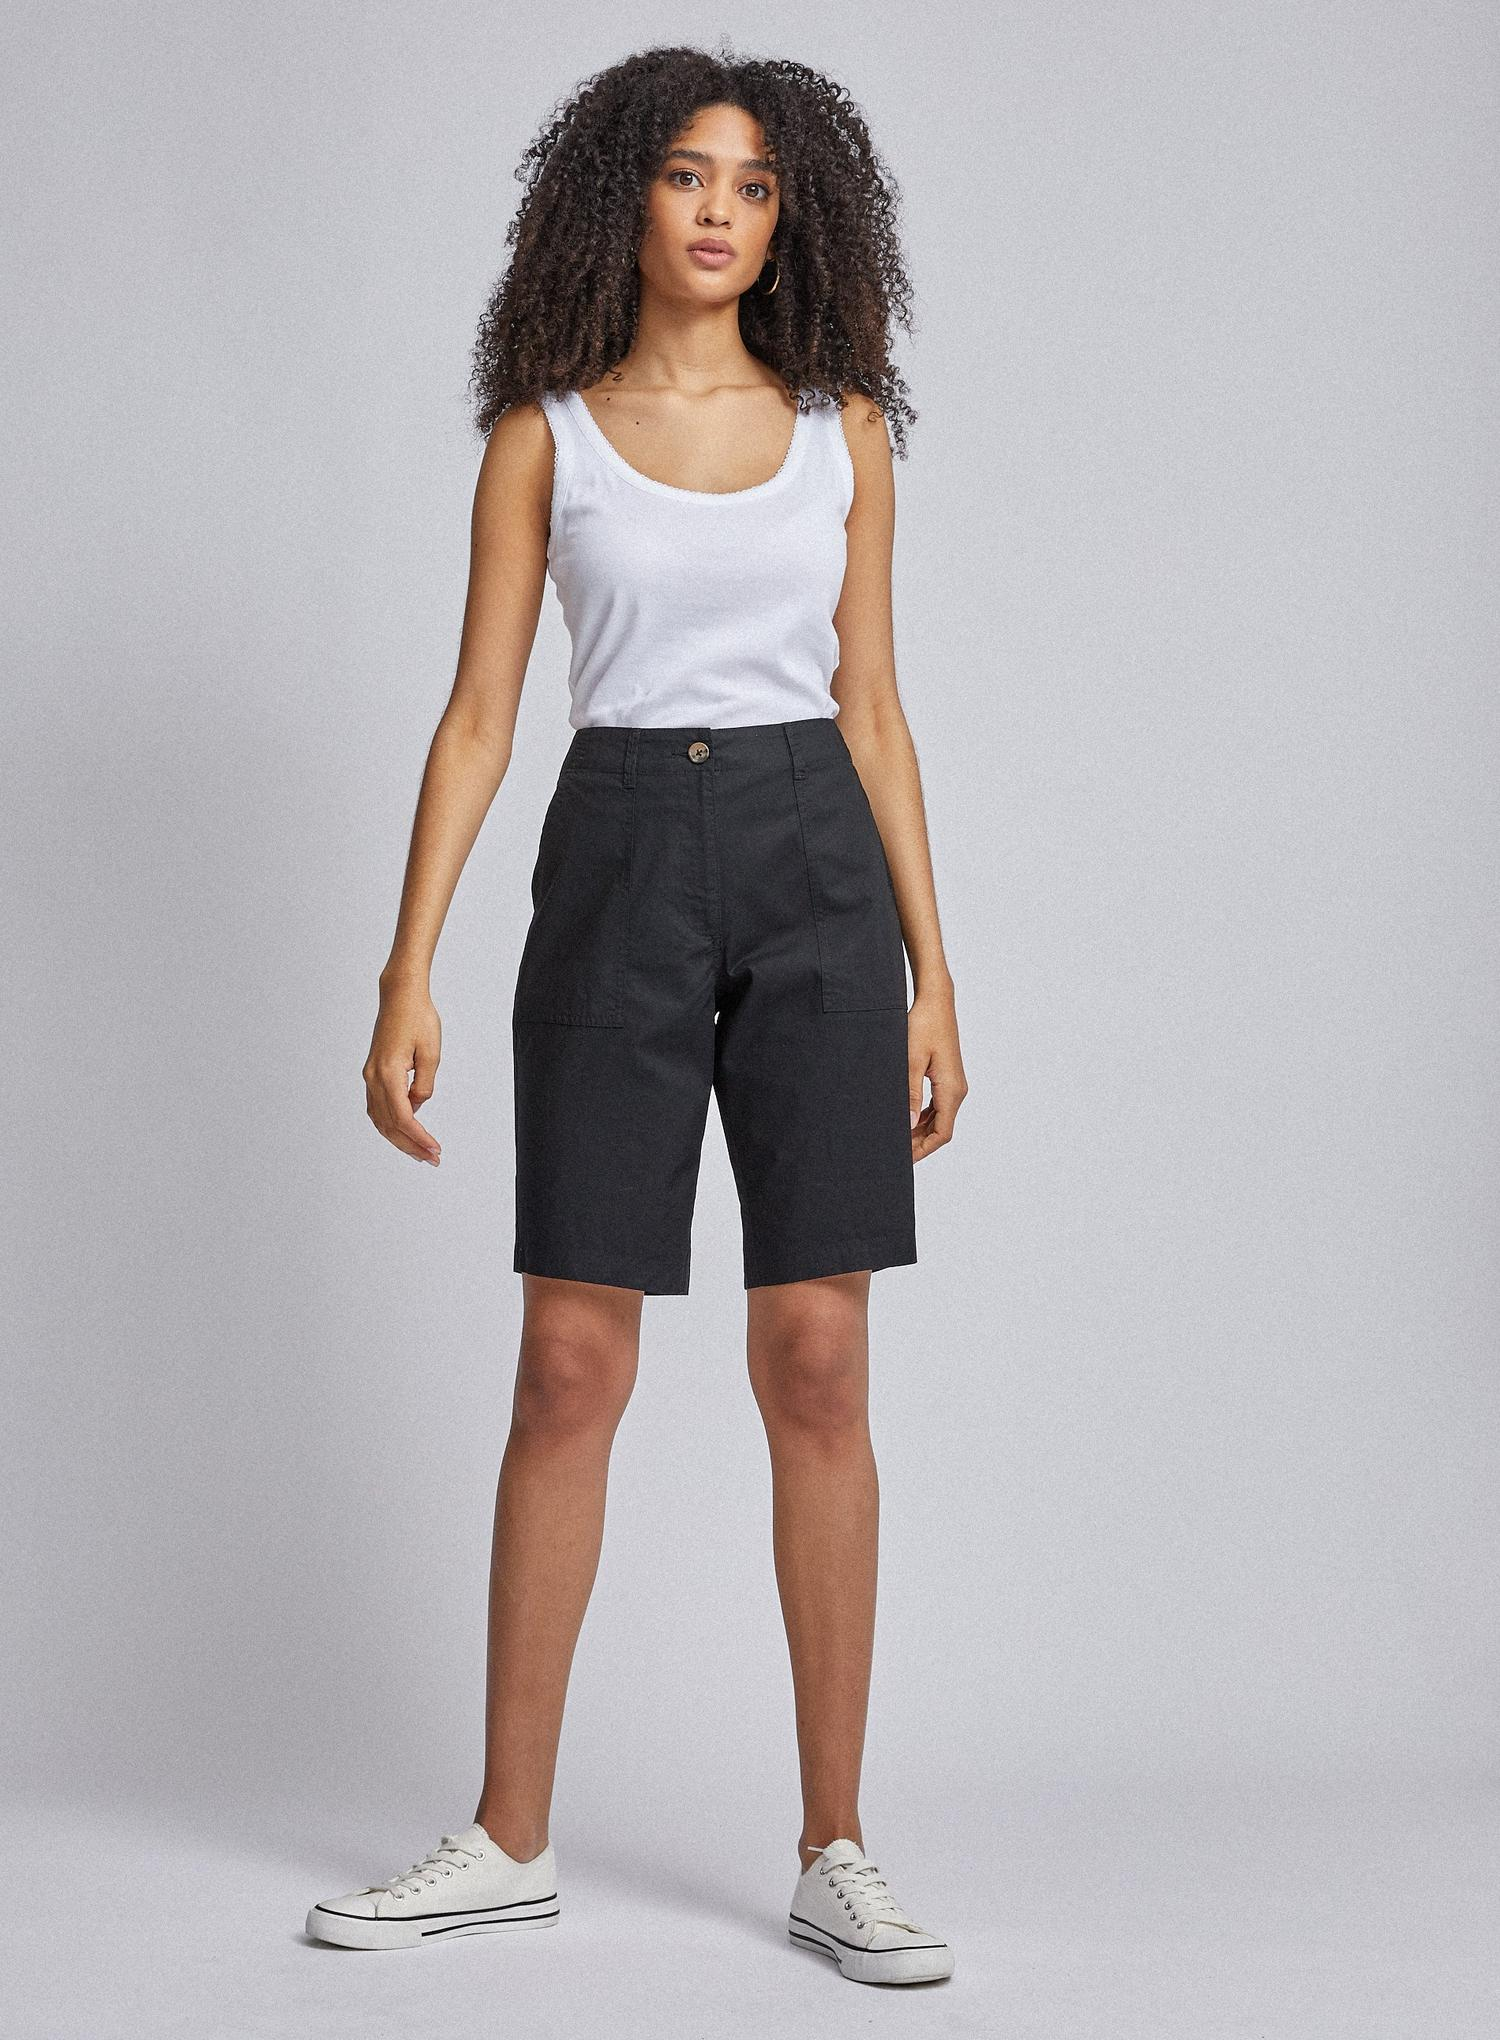 105 Black Poplin Knee Shorts image number 1